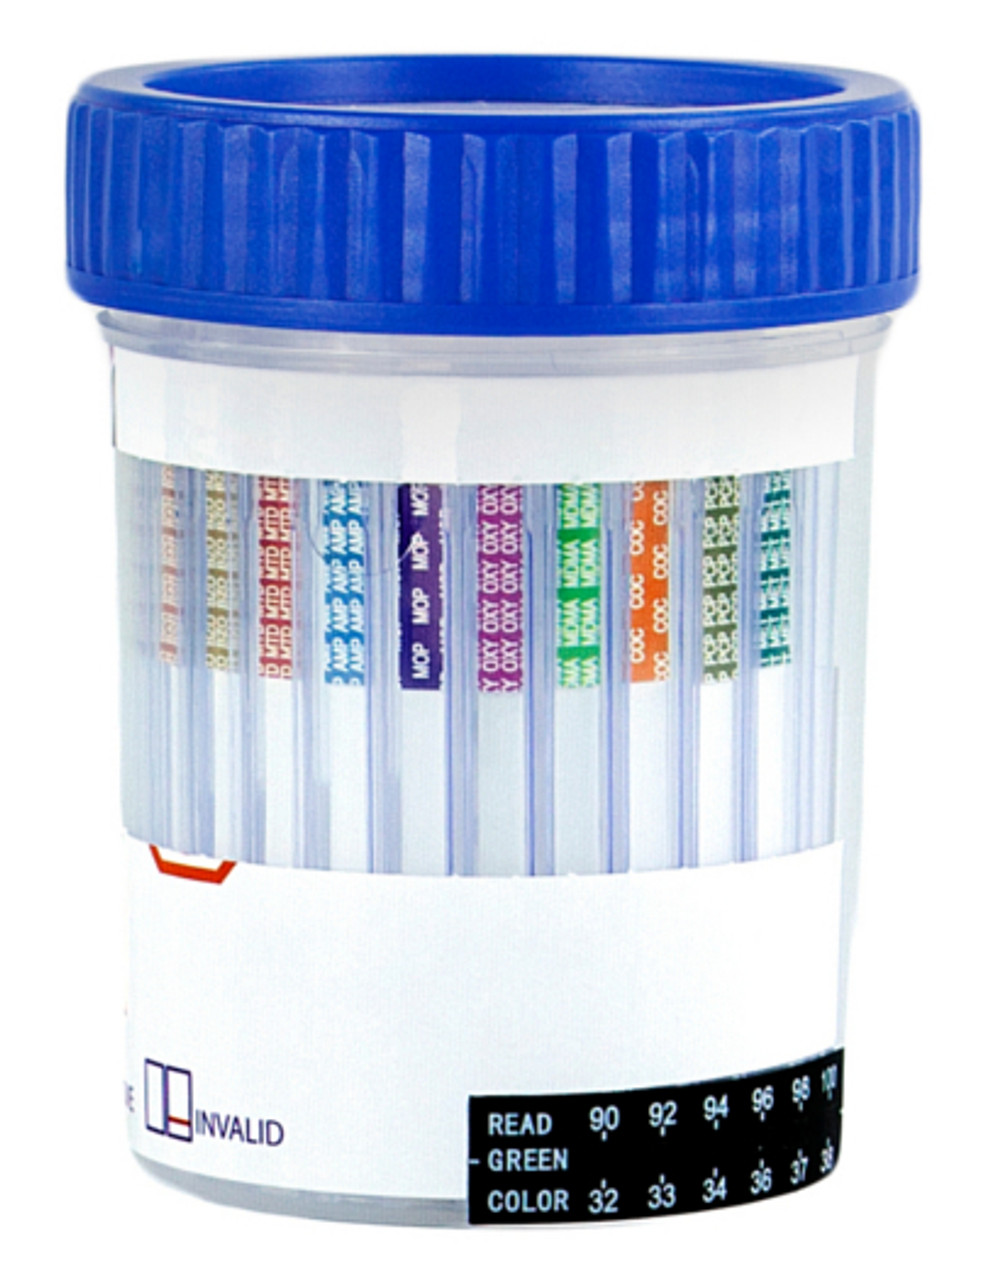 12 panel Drug Test Cup with K2